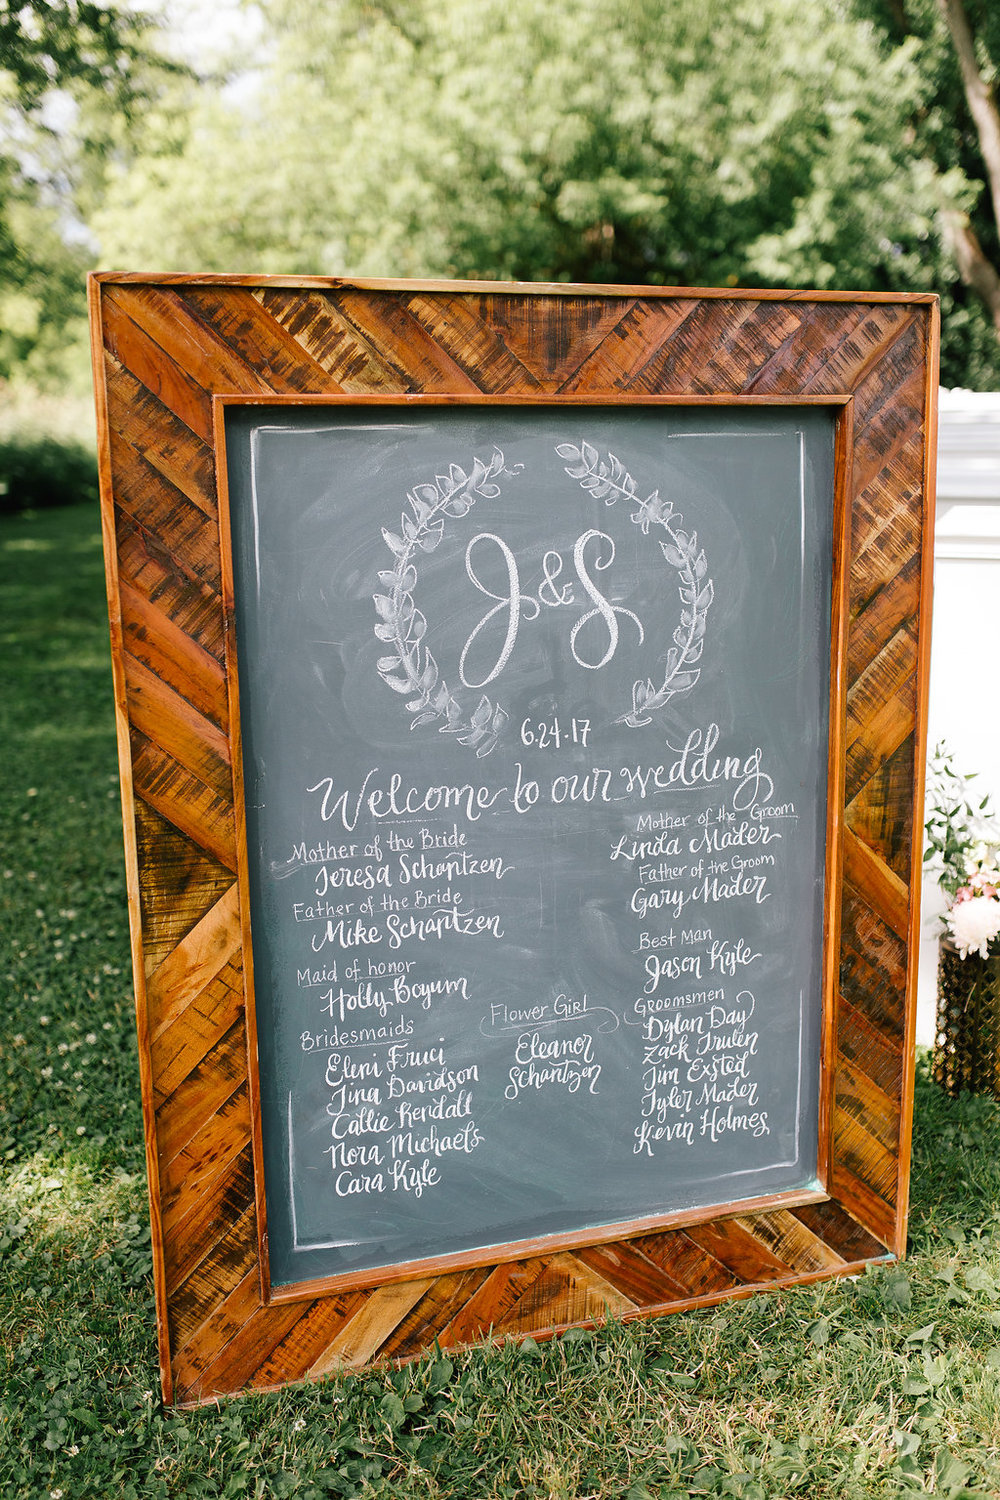 Jade and Seth Bloom Lake Barn wedding | Allison Hopperstad Photography | A Vintage Touch Weddings planning nad design | Day of Coordinating by Sixpence Events | welcome program sign with wedding party